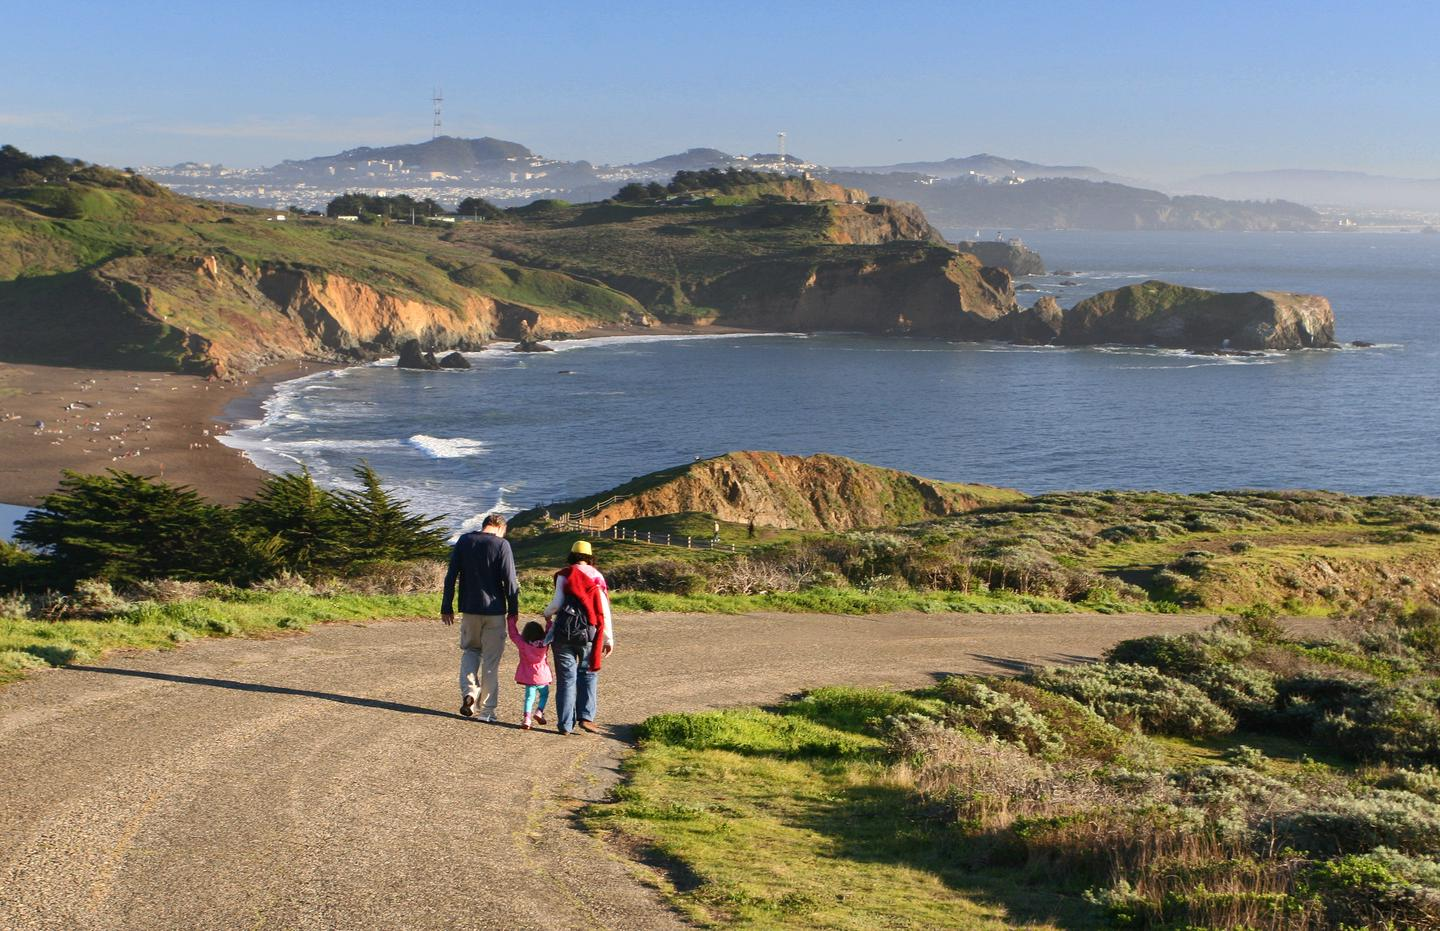 Marin Headlands and Rodeo BeachTrails in the Marin Headlands offer a fun and spectacular hiking experience for all.